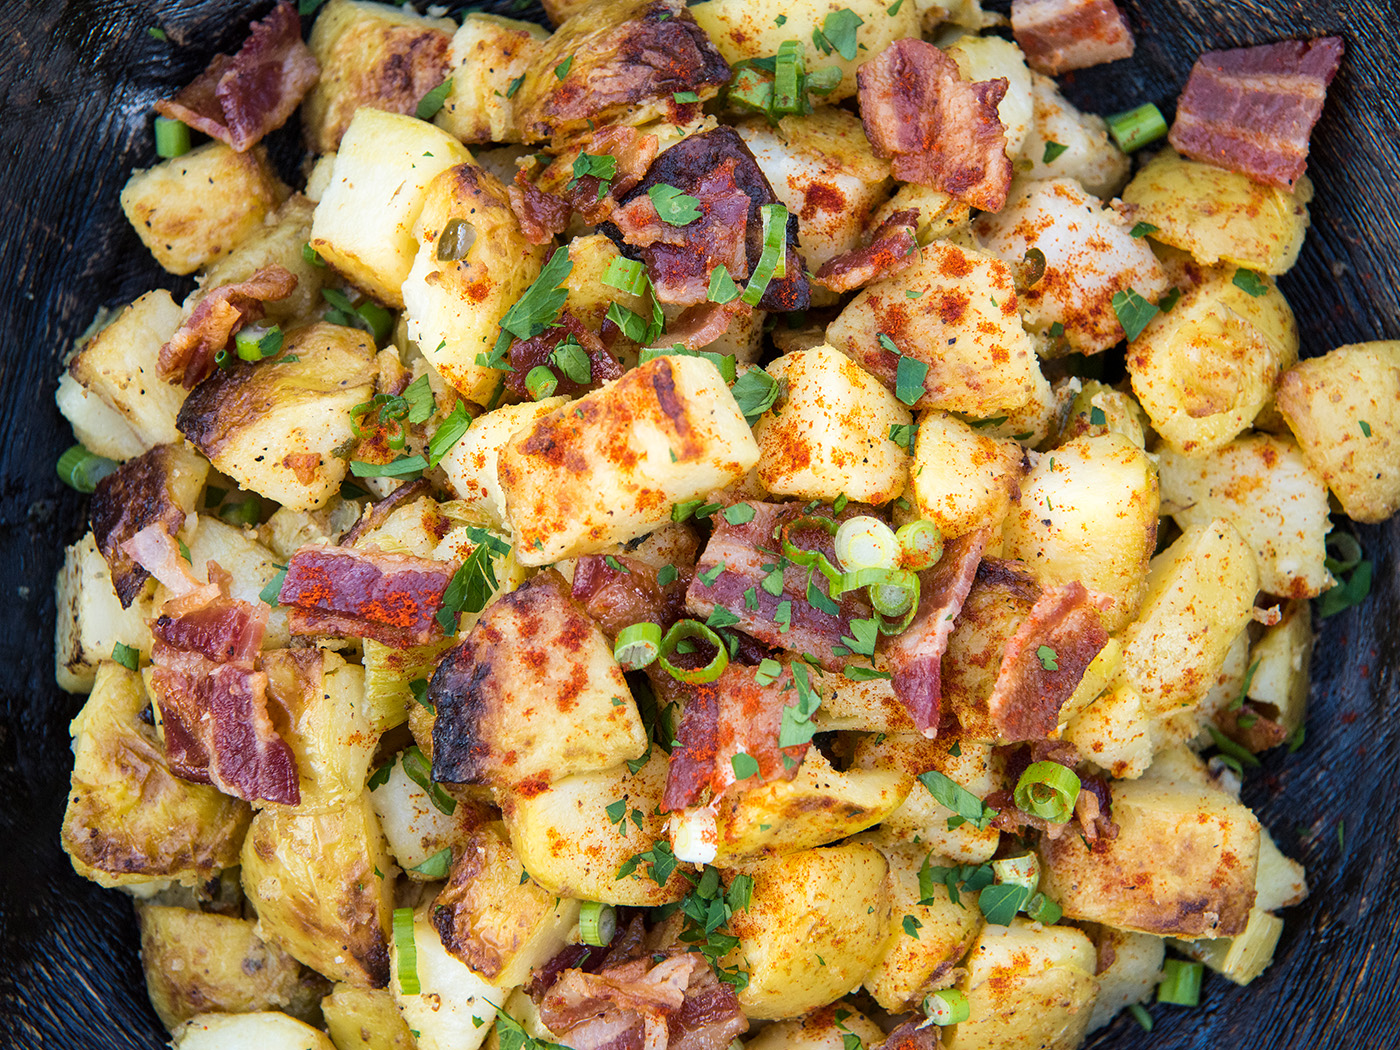 Deborah_Farnault_Food_Network_How-To-Win-Summer-Roasted-Leftover-Potato-Salad-4x3-0881.jpg